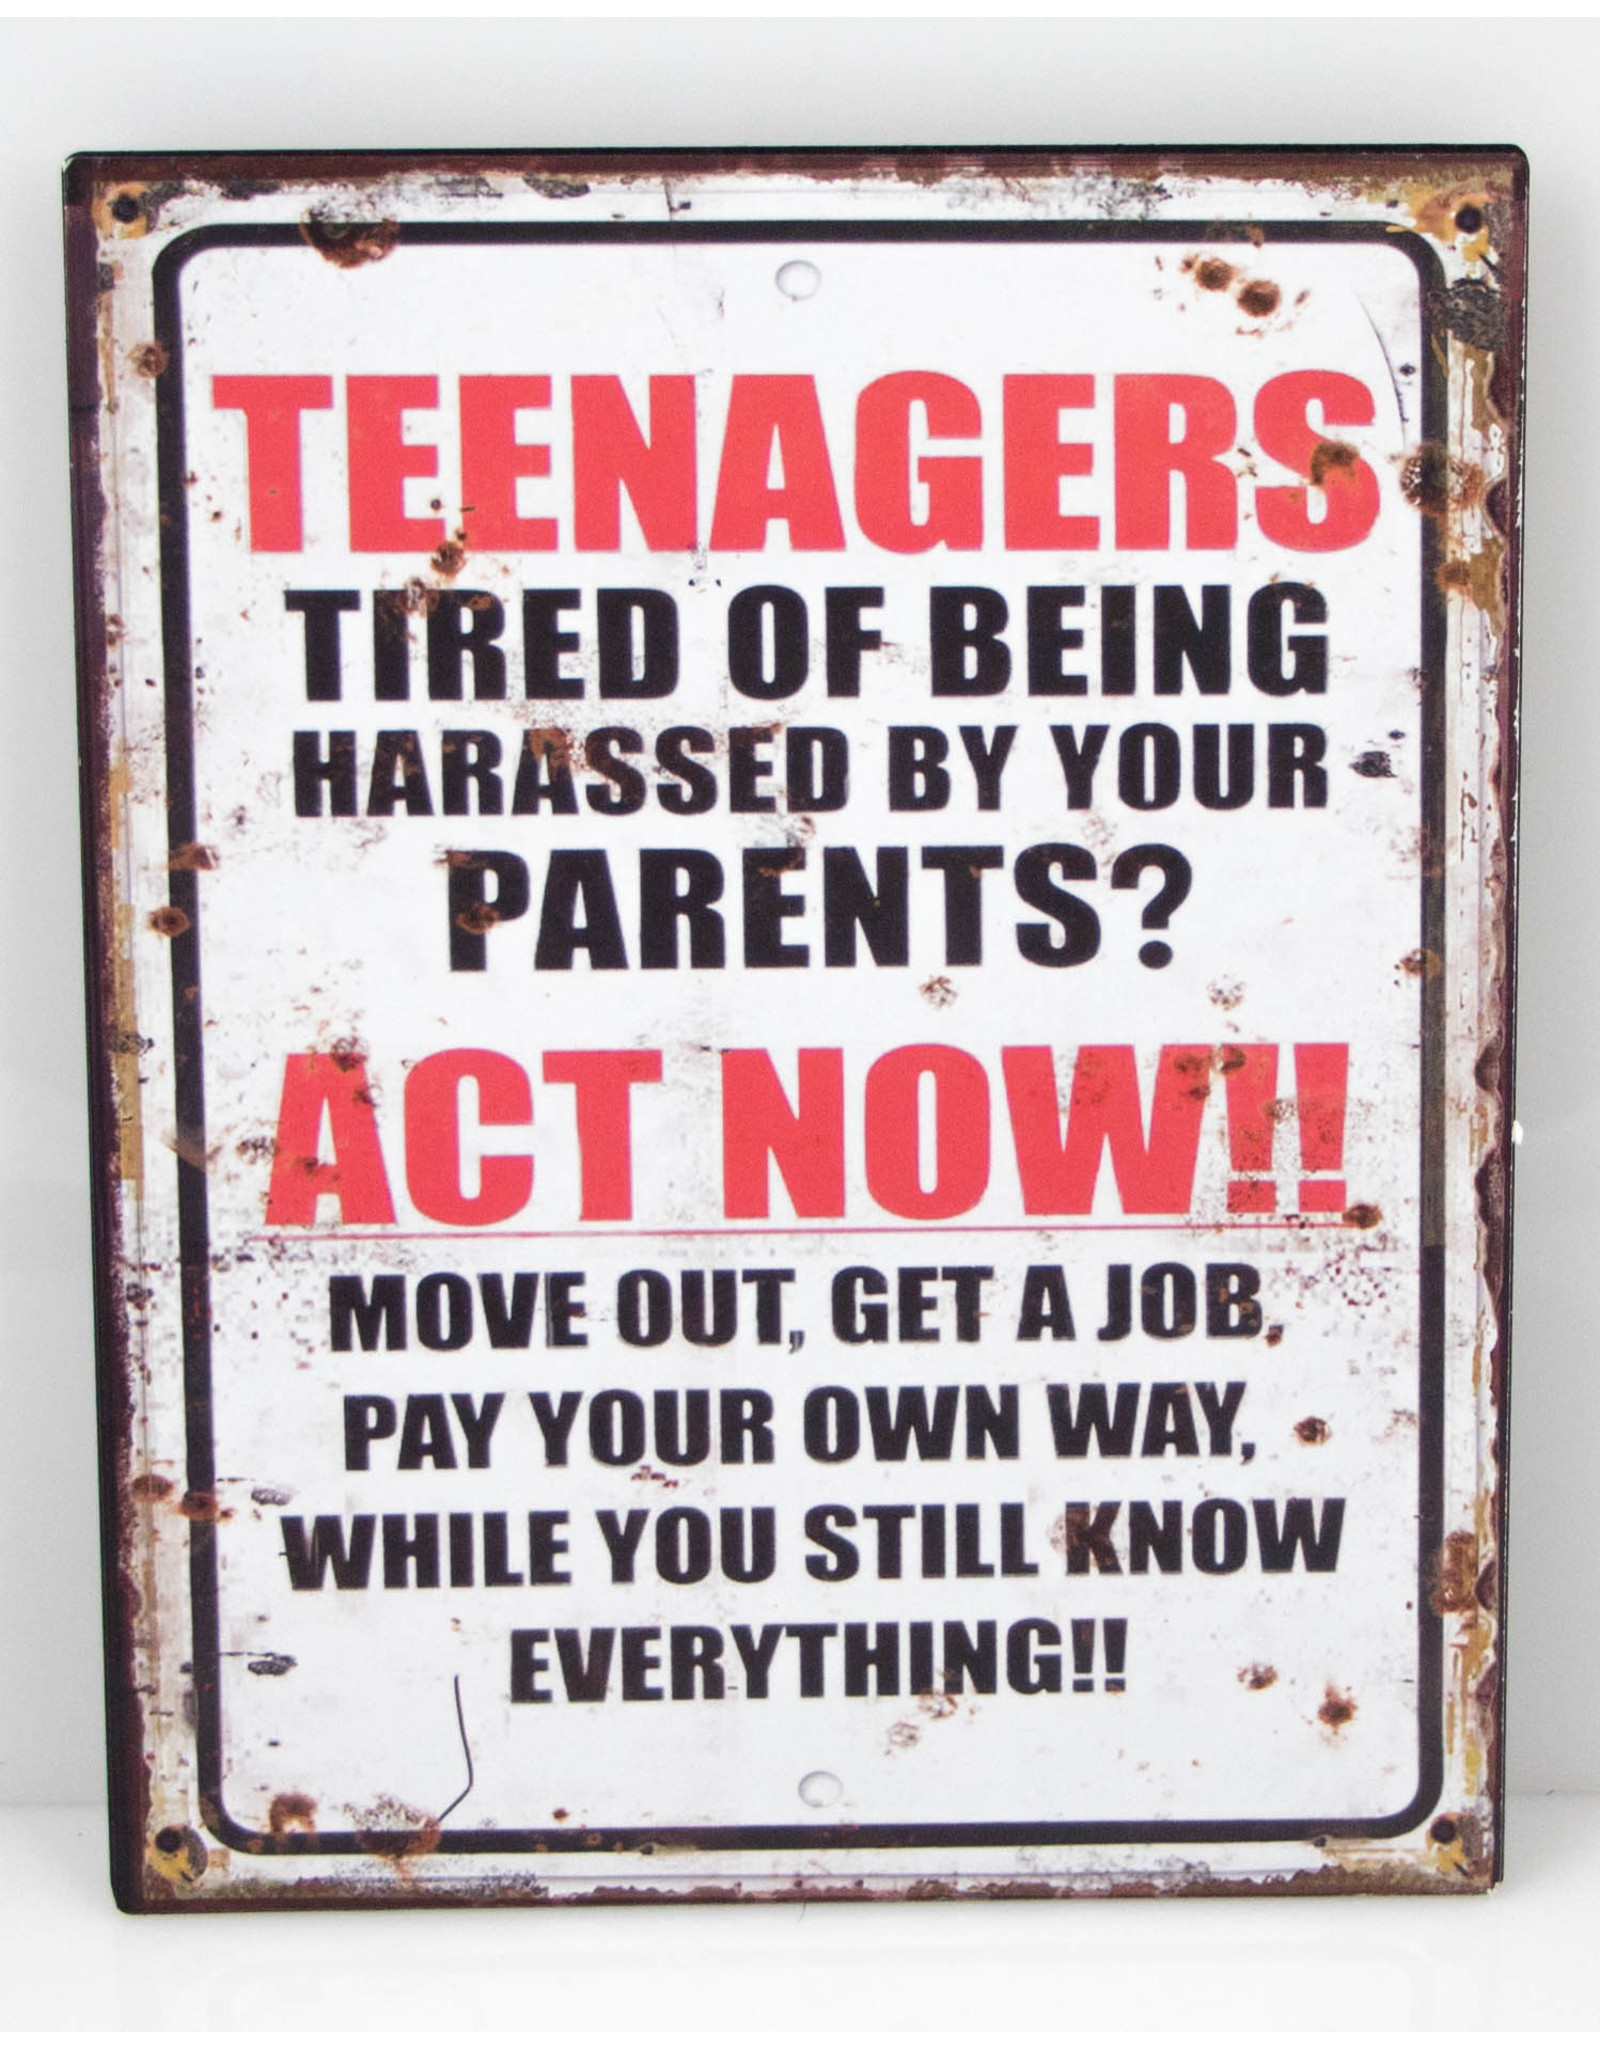 Teenagers act now